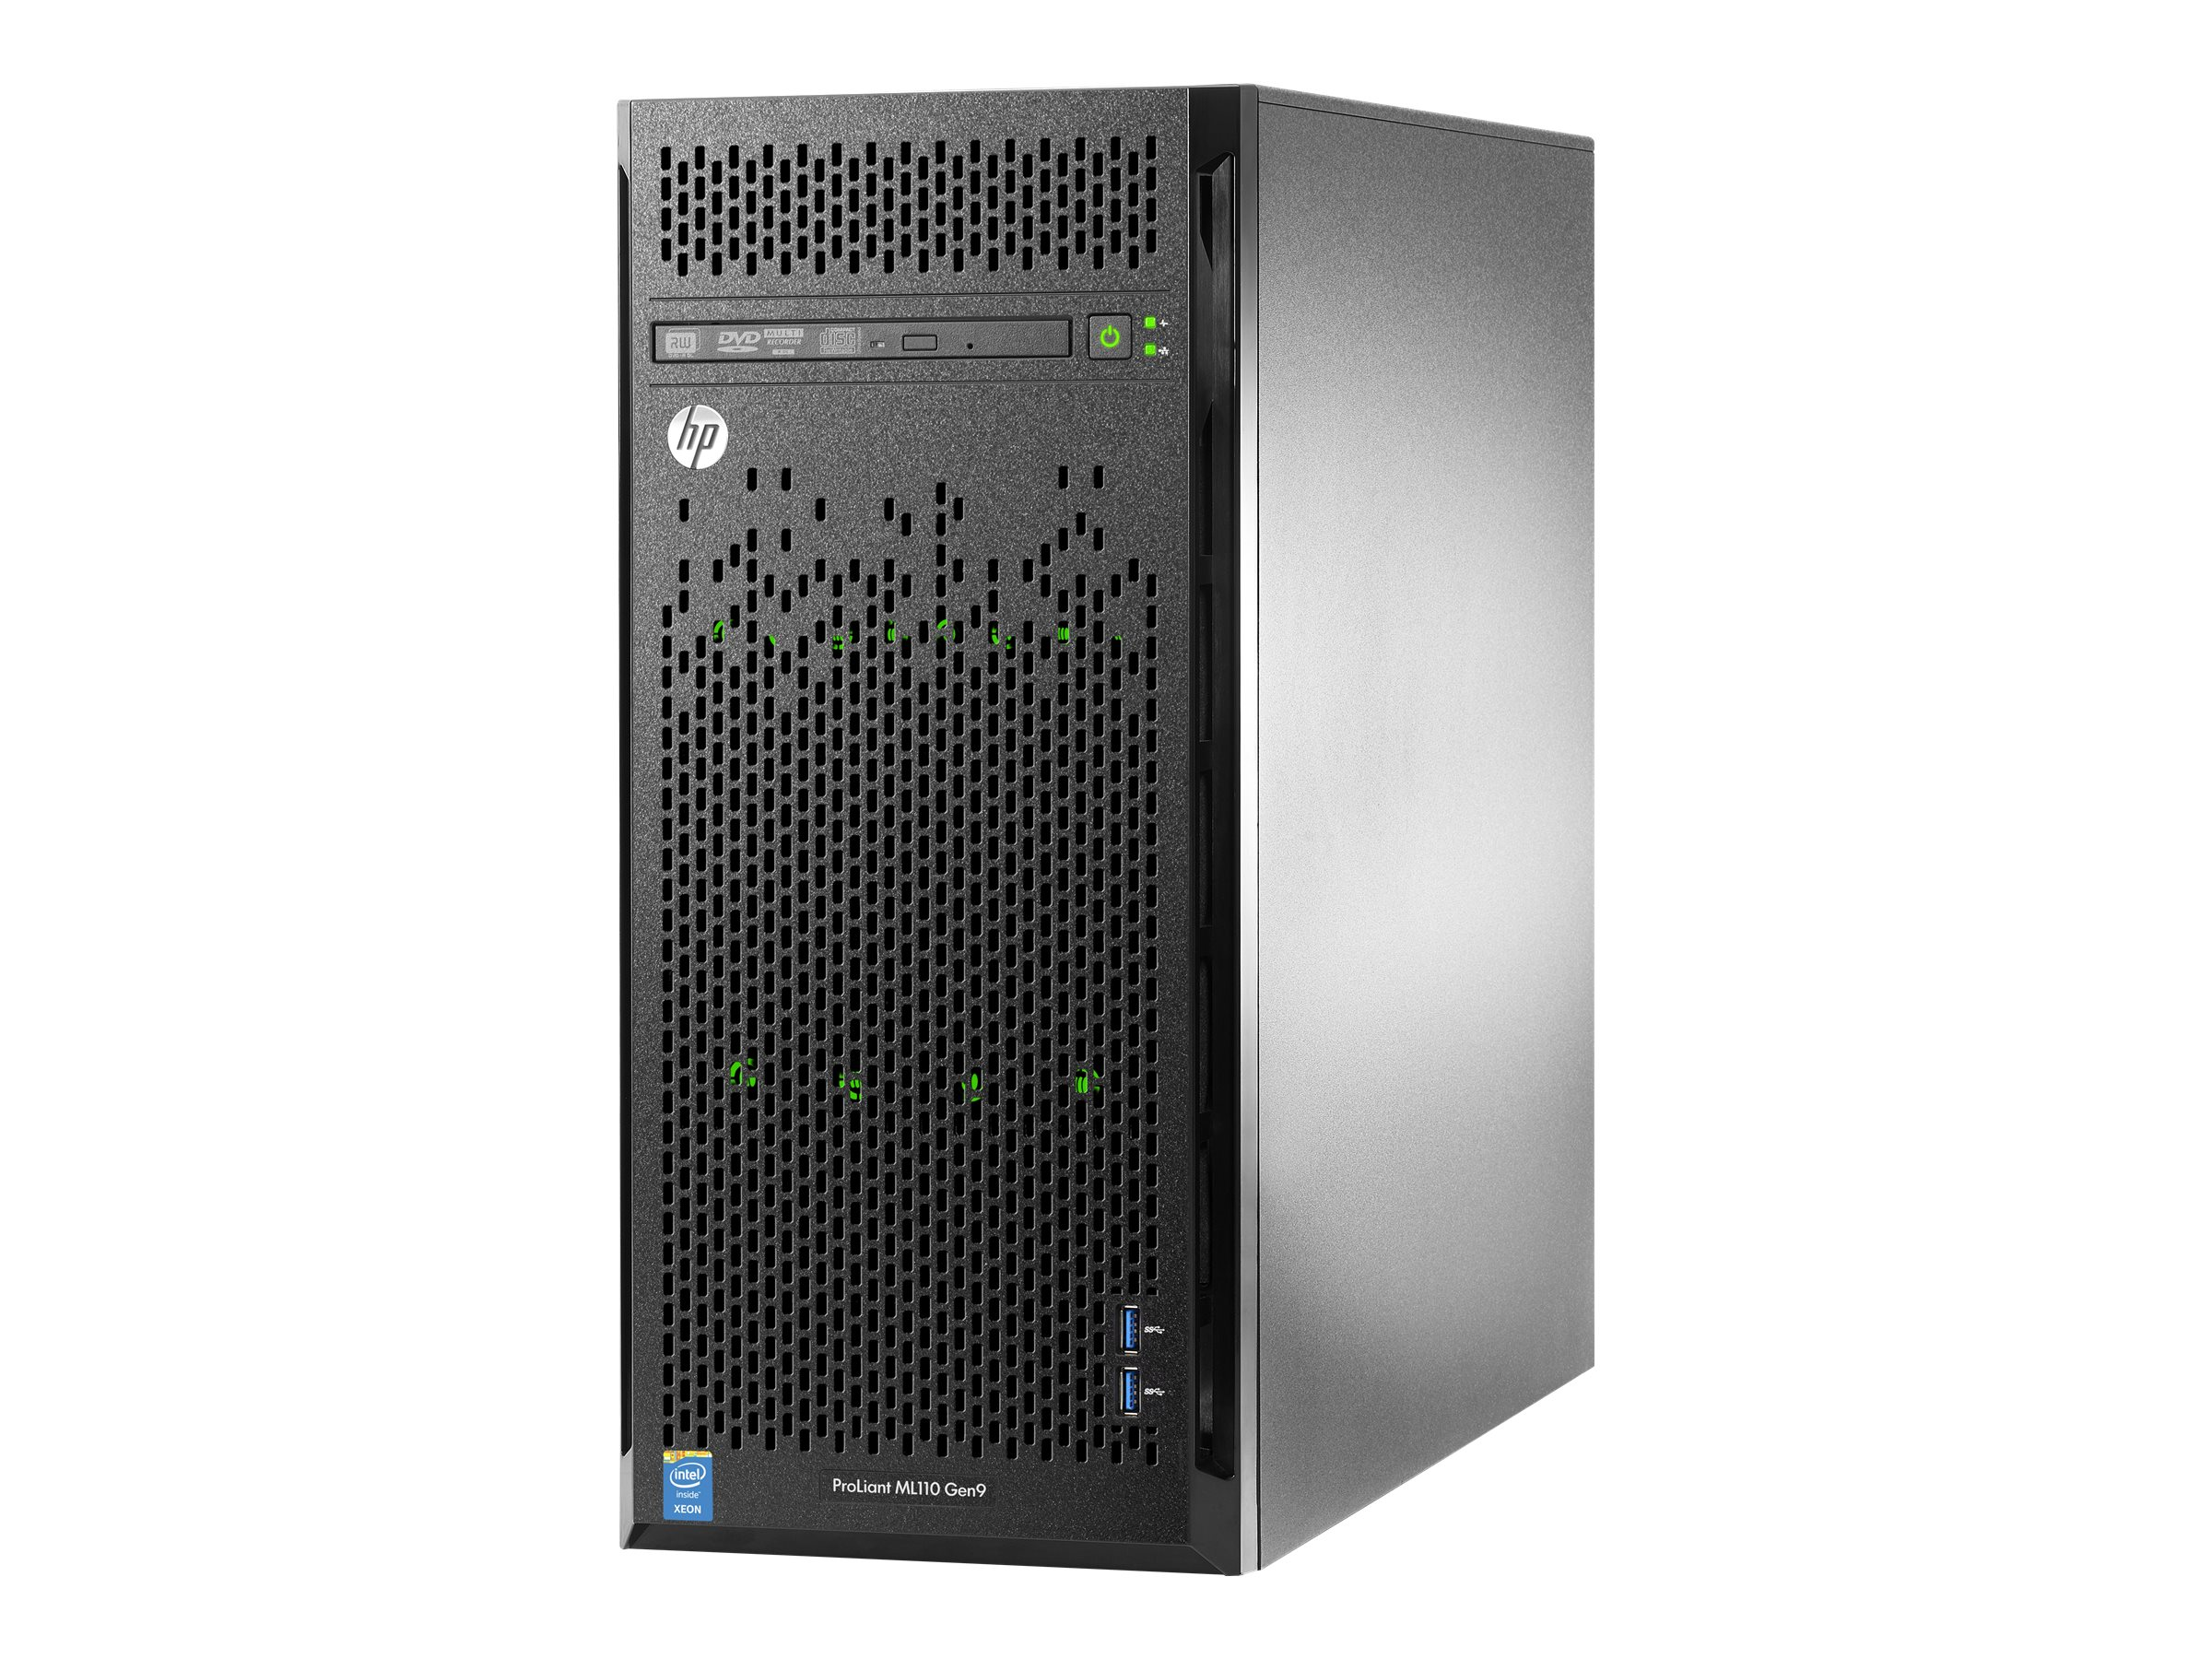 HPE ProLiant ML110 Gen9 Entry - Server - Tower - 4.5U - 1-Weg - 1 x Xeon E5-2603V4 / 1.7 GHz